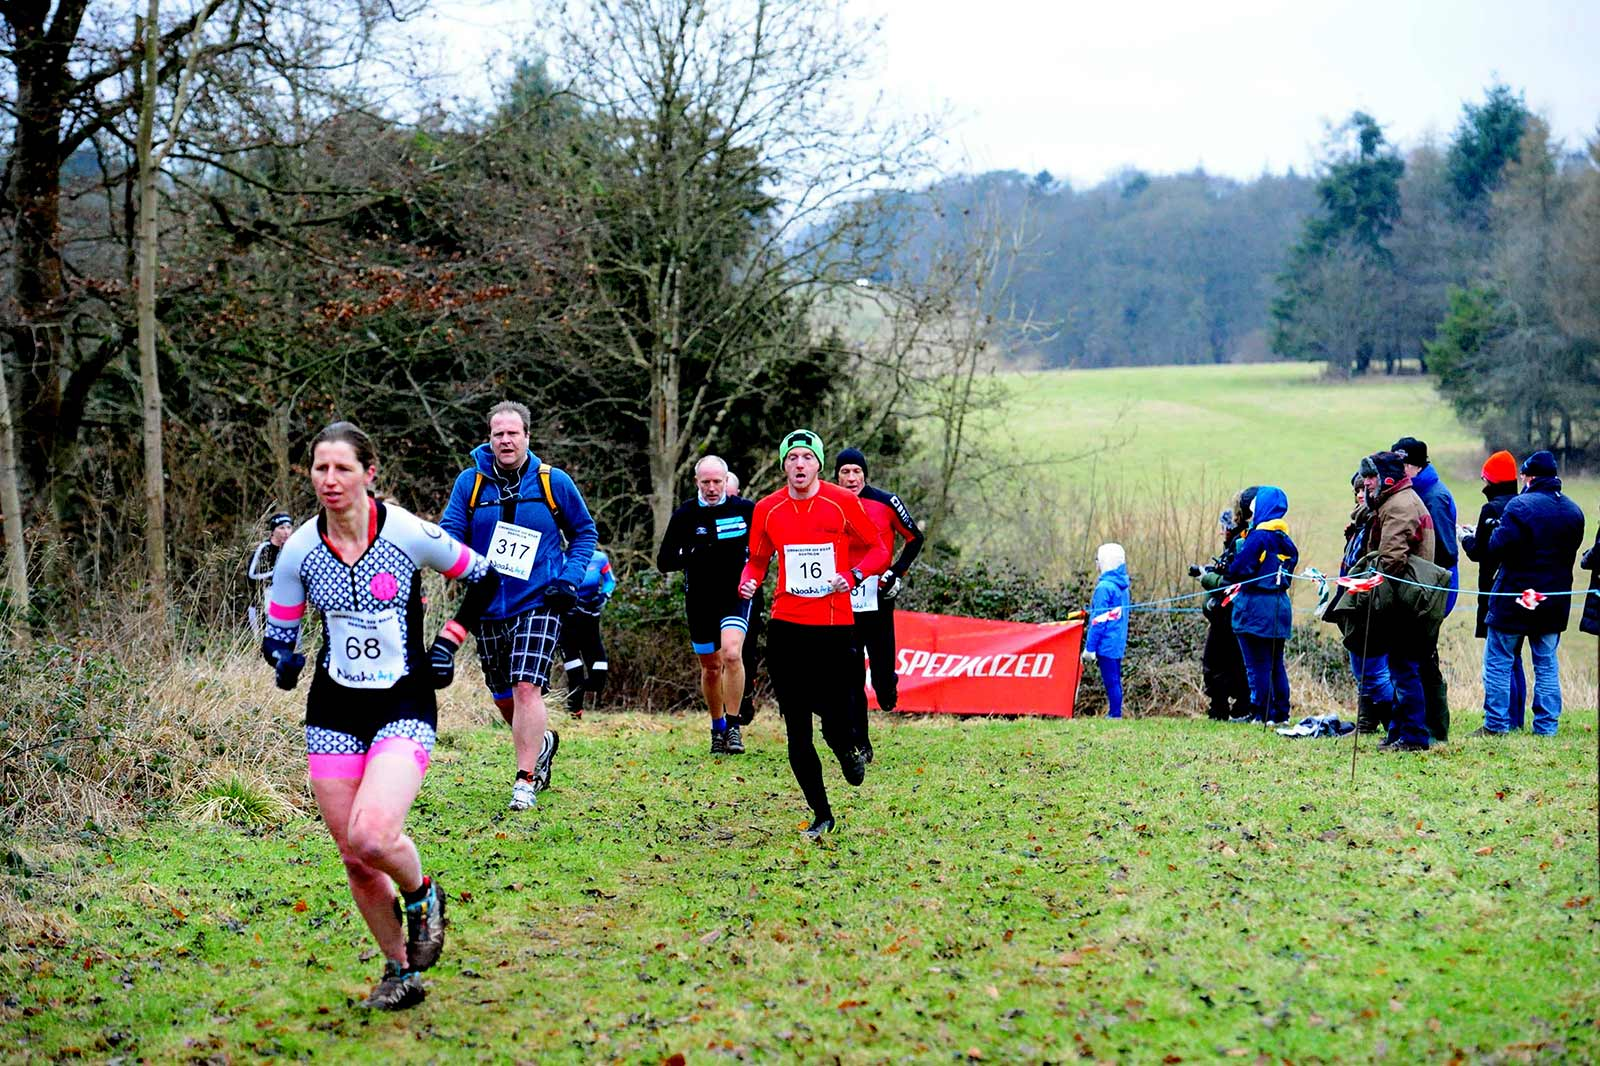 Cirencester off Road Duathlon